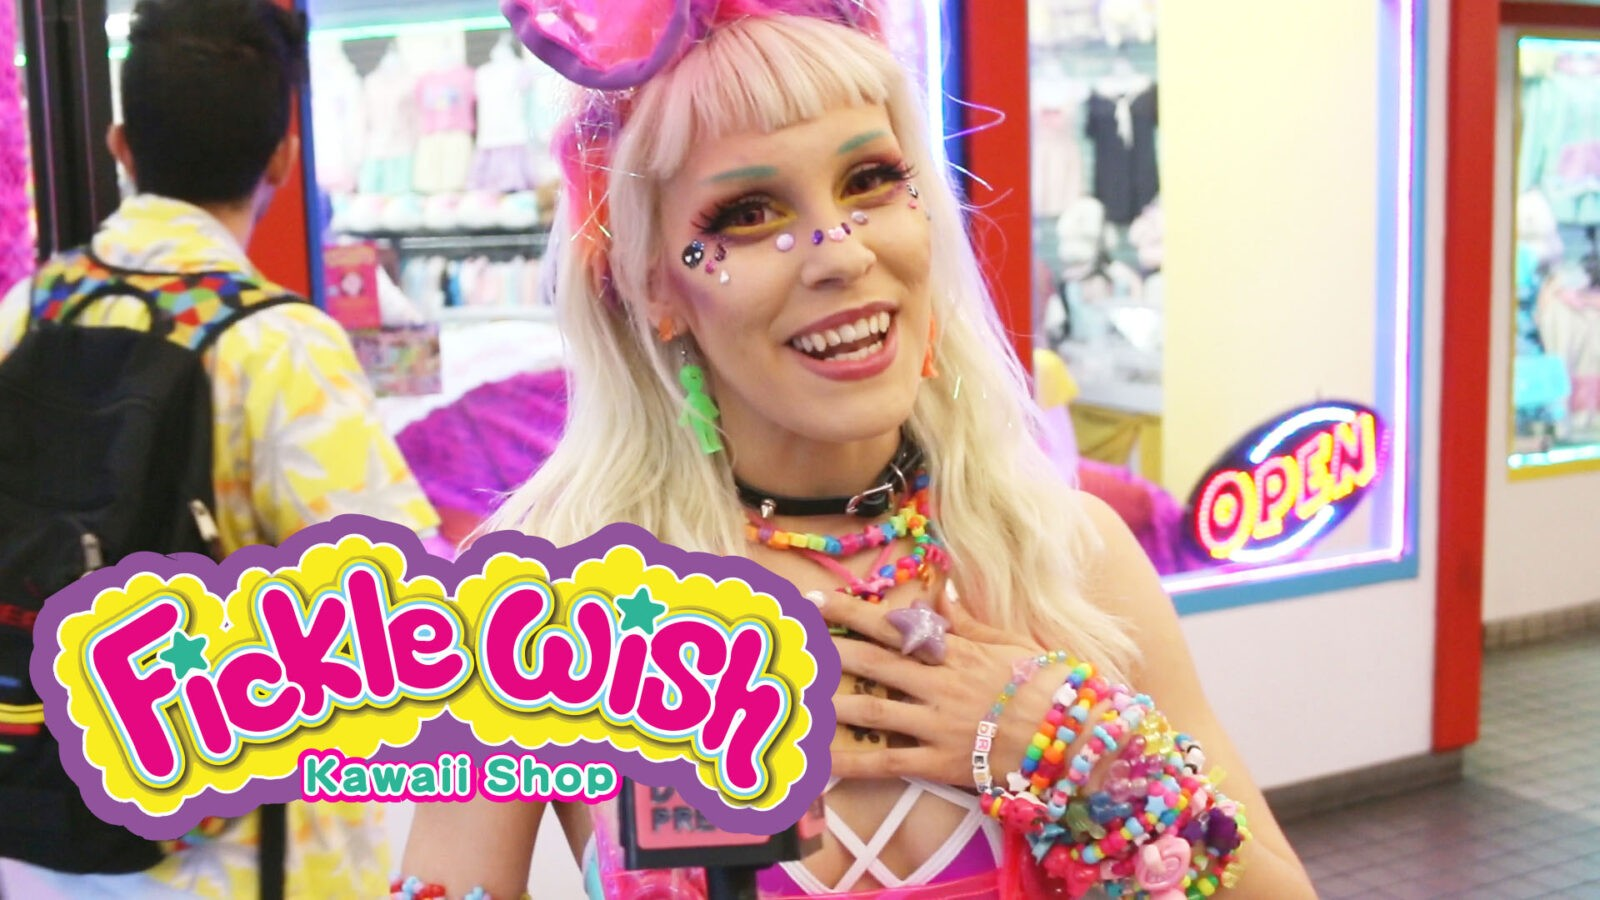 Audra presents the Grand Opening of Fickle Wish – a Harajuku Fashion Store in Little Tokyo, CA